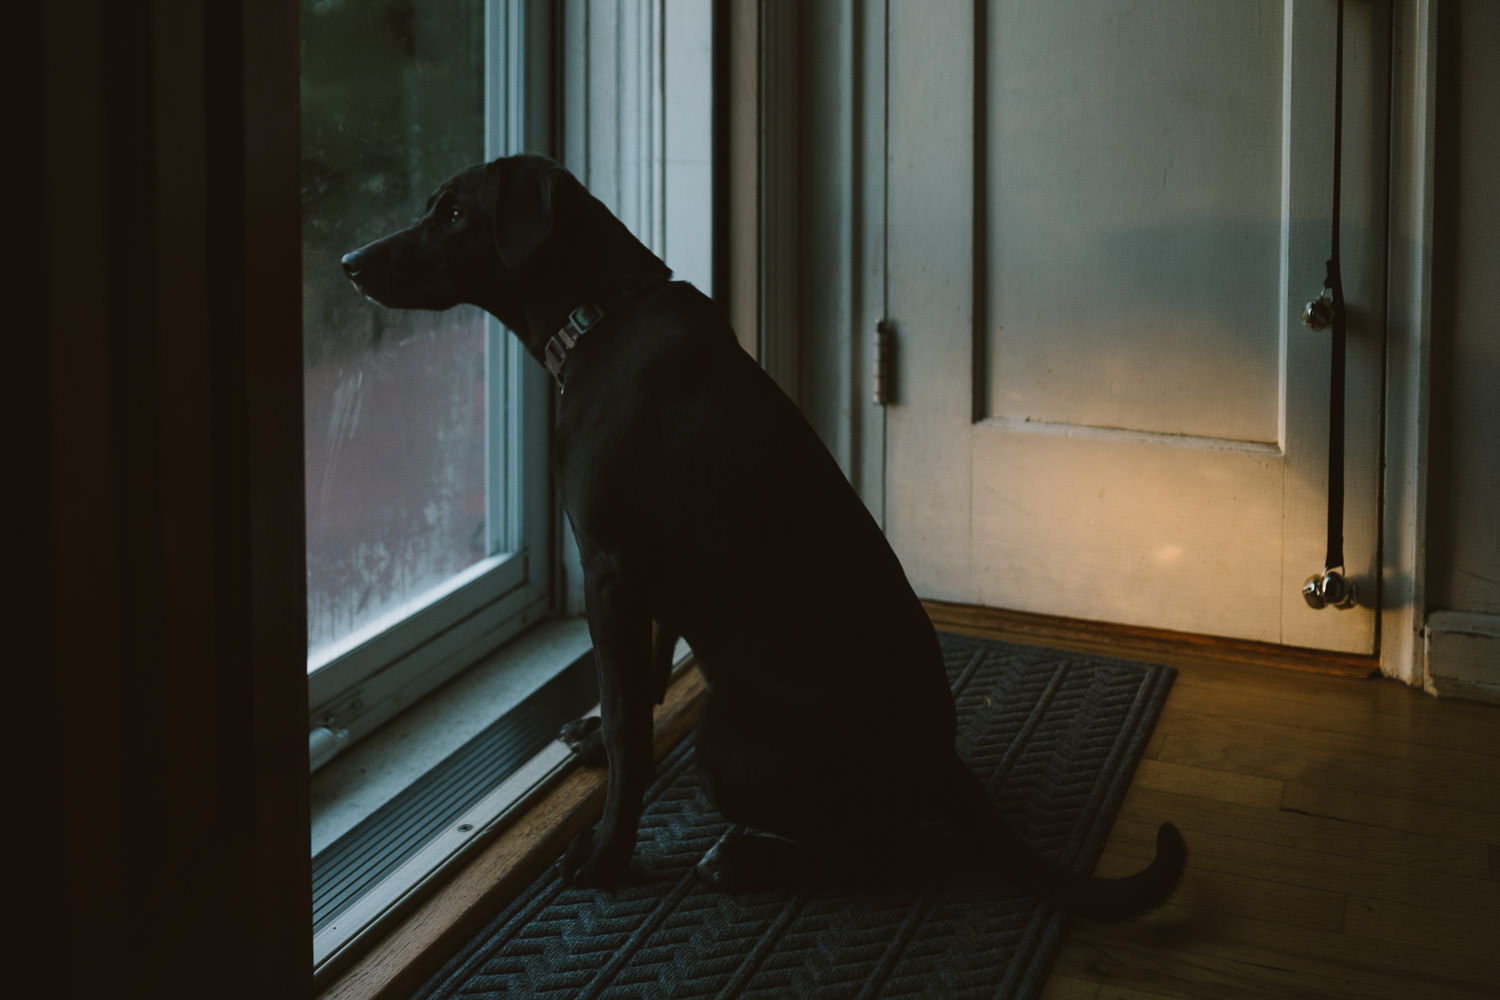 A dog looks out the front door.